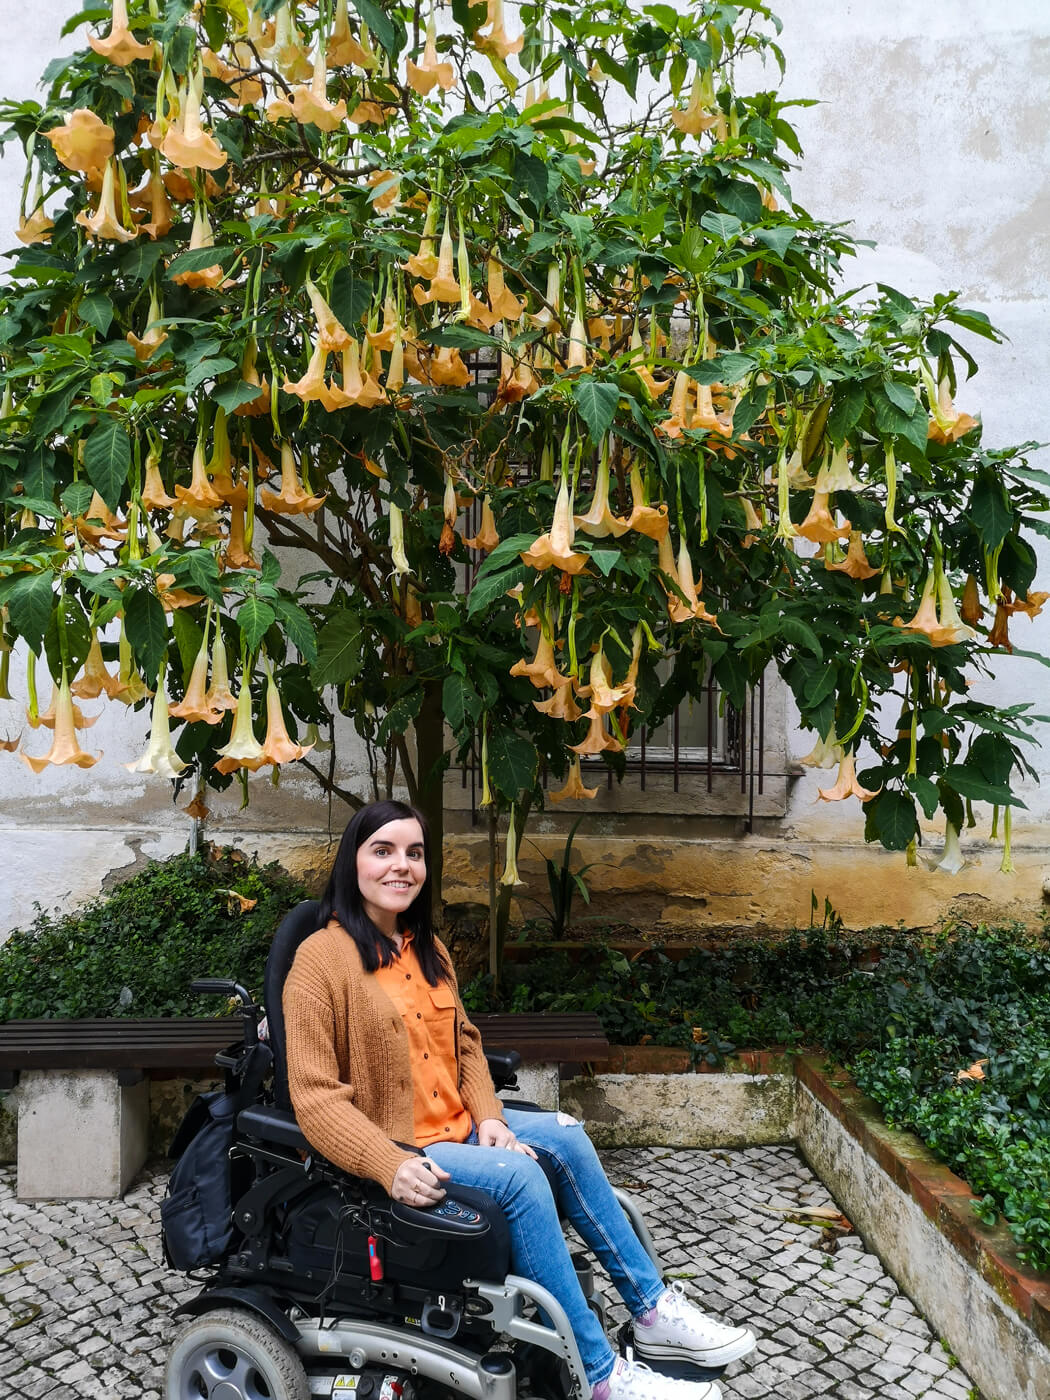 Emma sitting in her power wheelchair below a green tree with pretty orange flowers. Emma is wearing blue skinny jeans, an orange shirt and burnt orange cardigan and white converse shoes. Emma is smiling at the camera.